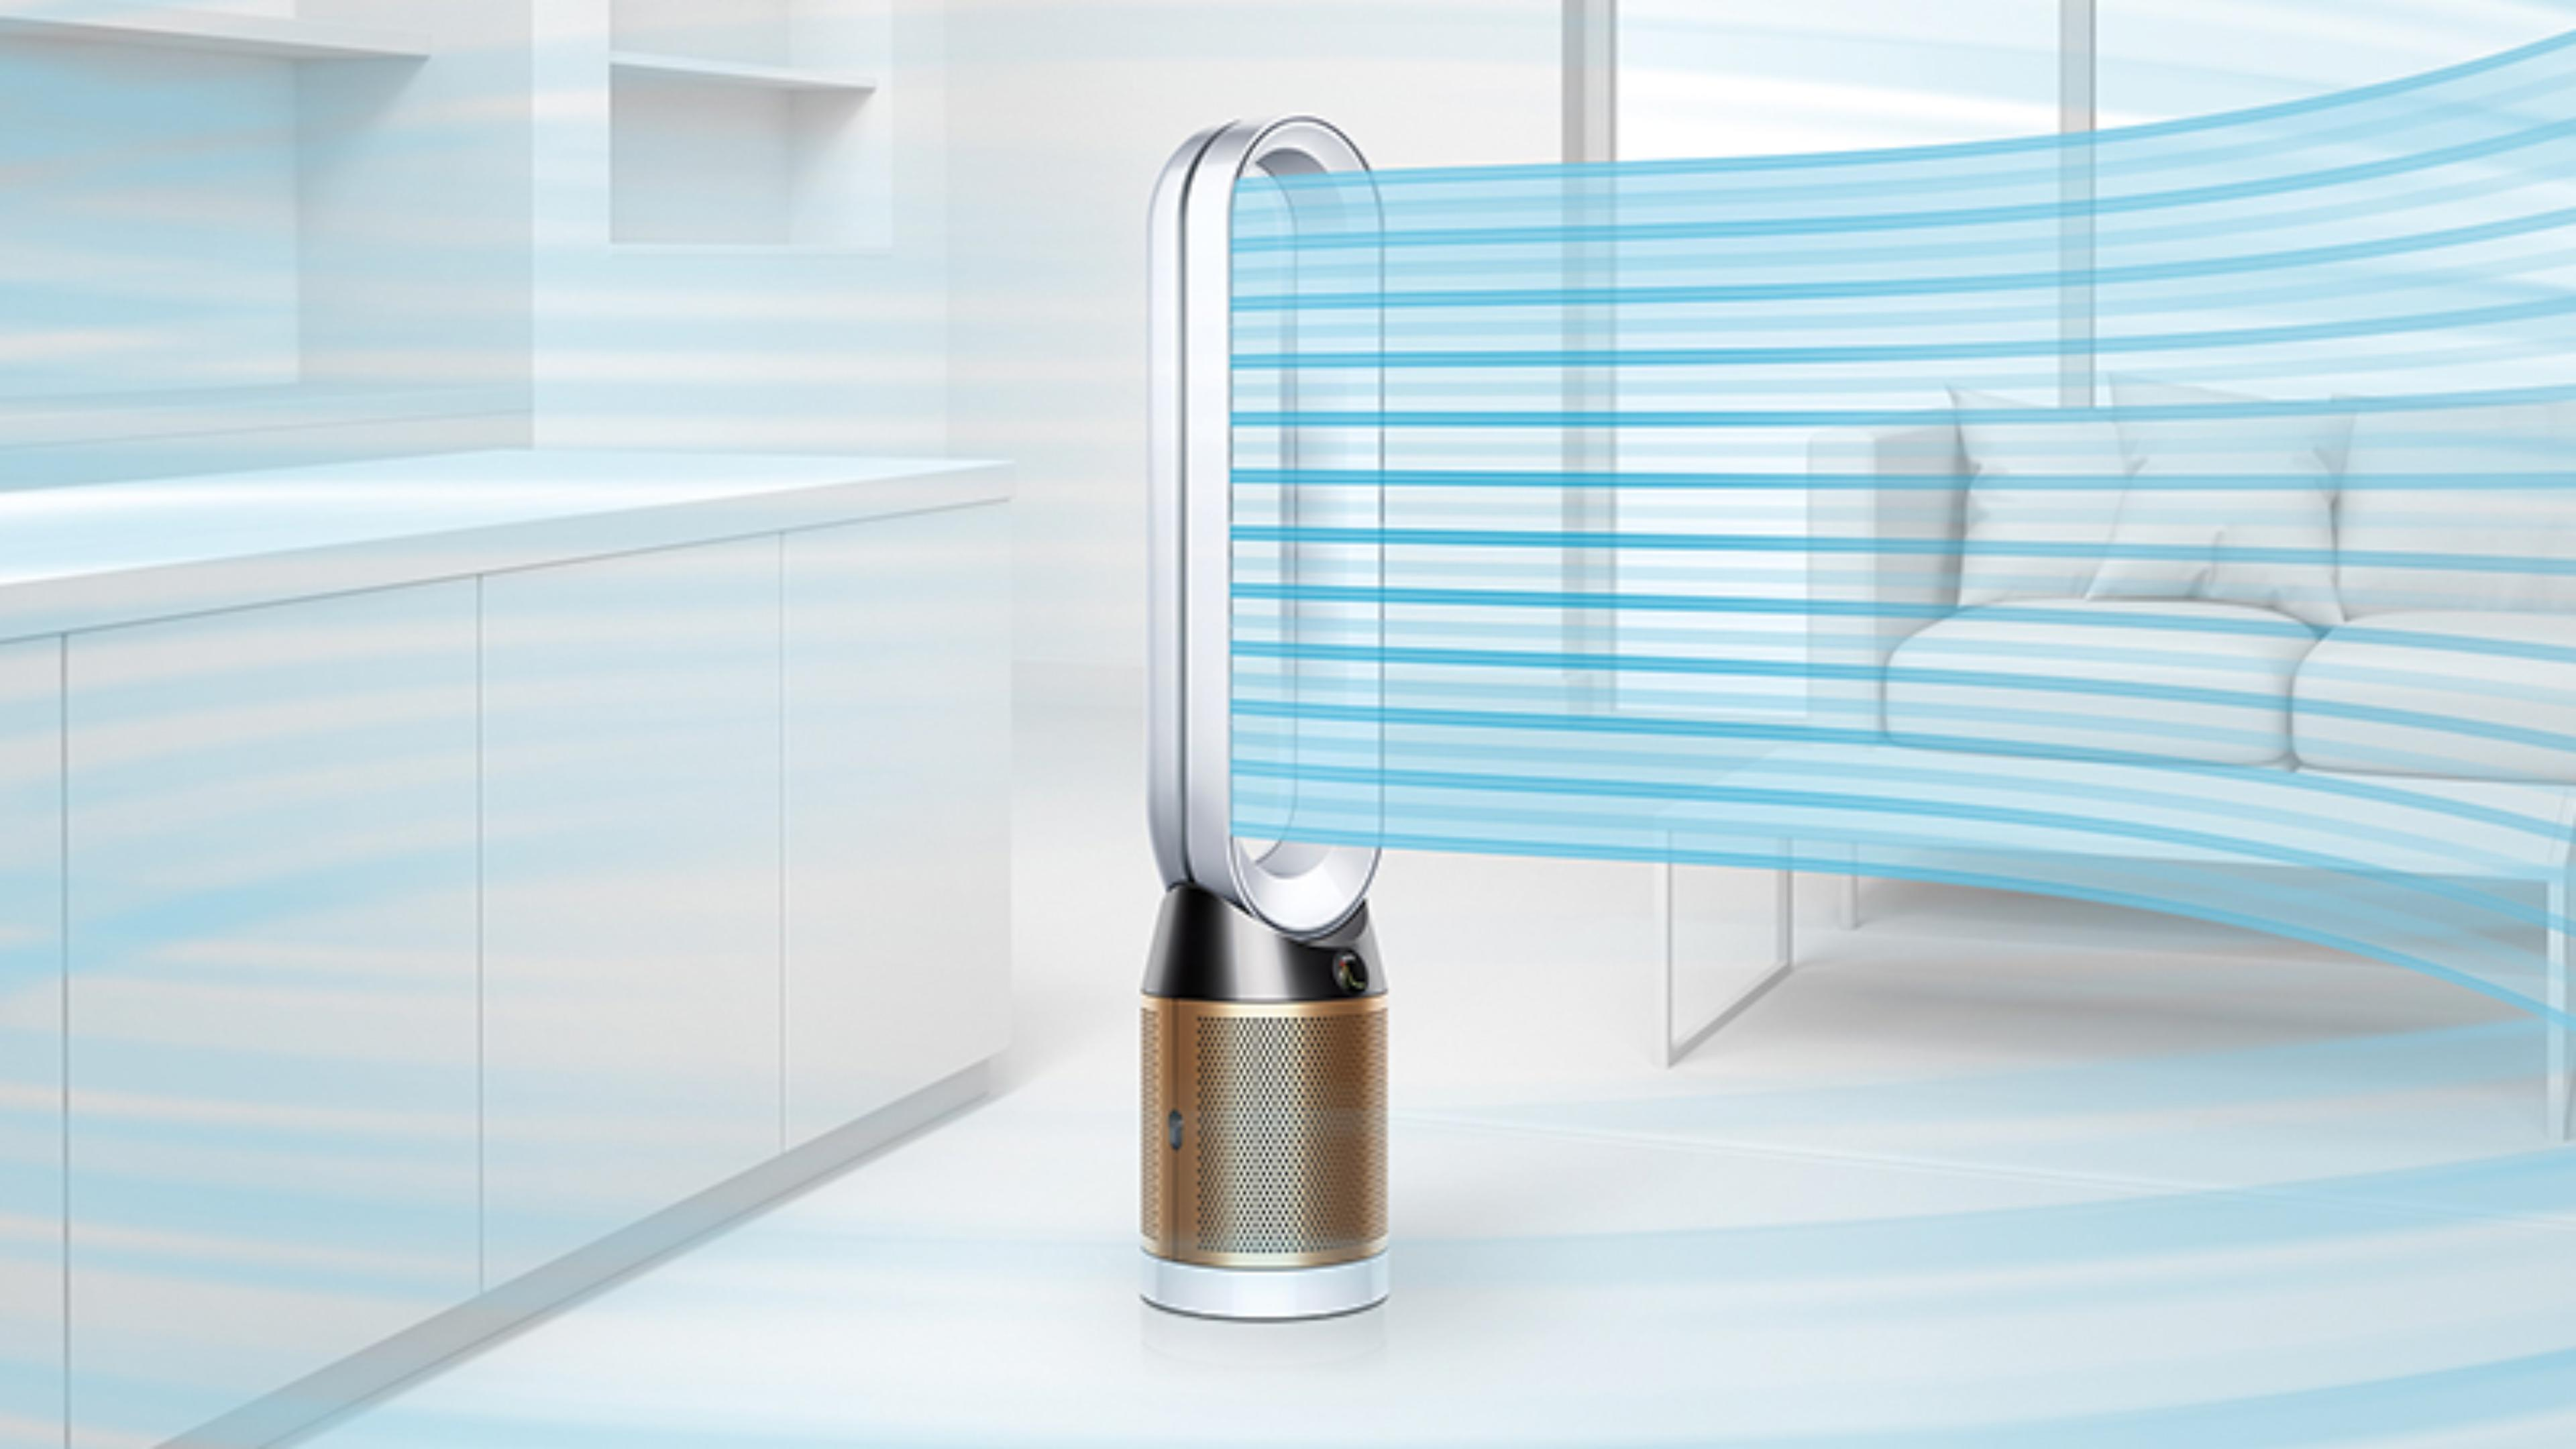 A Dyson Pure Cryptomic purifier projecting air throughout the room